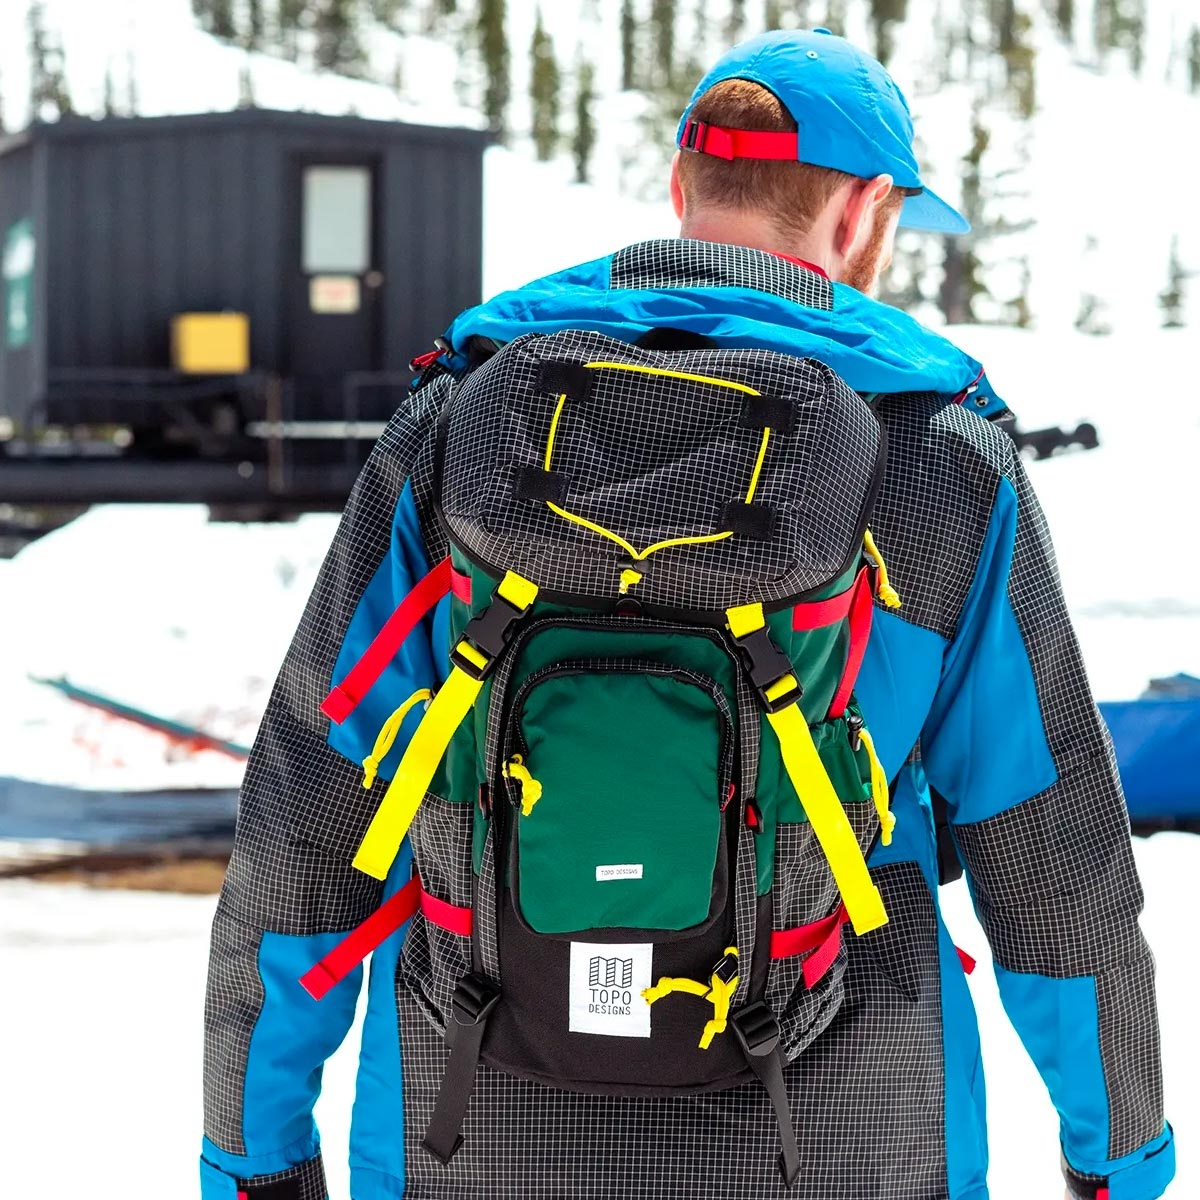 Topo Designs Topo Designs Subalpine Pack Forest, with a roomy main compartment make this the perfect pack for hiking